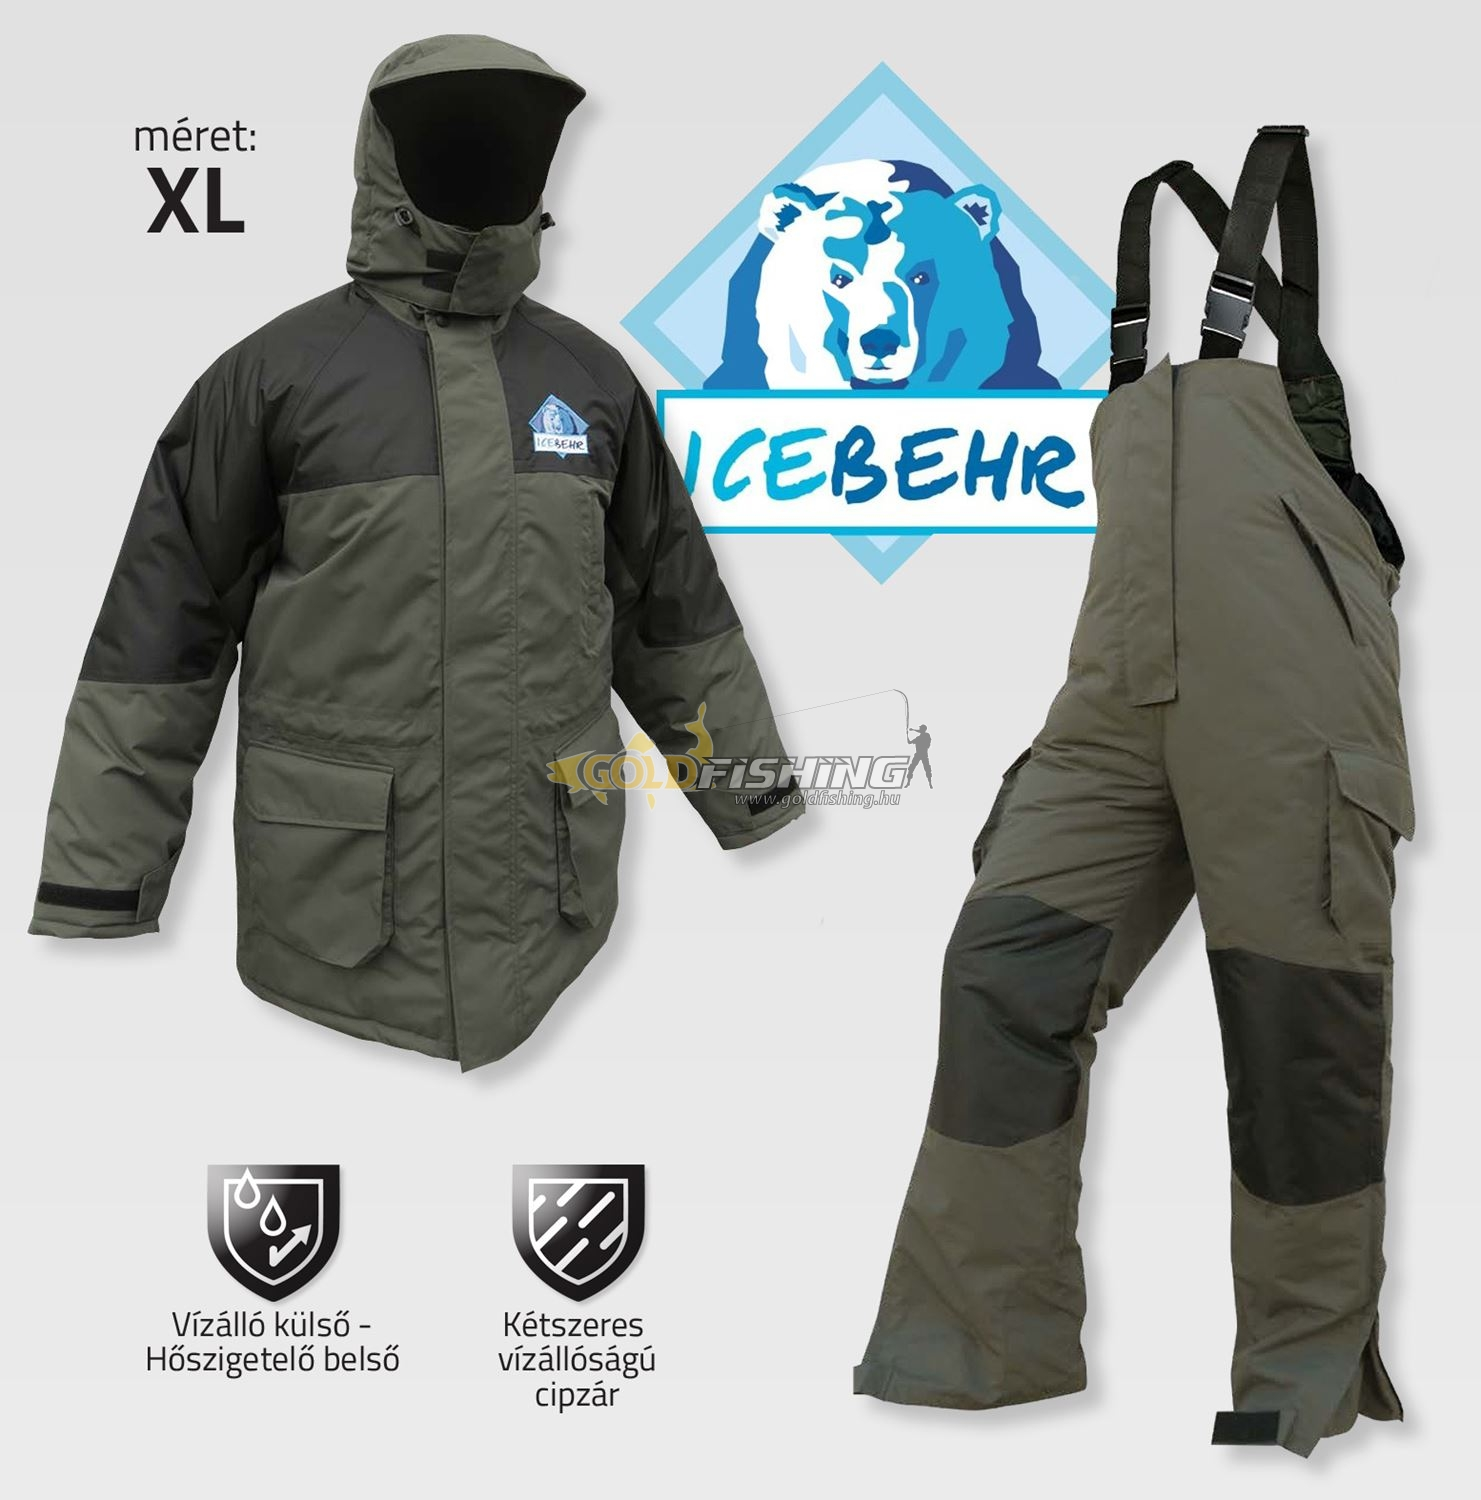 BEHR, IceBehr Extreme thermoruha XL